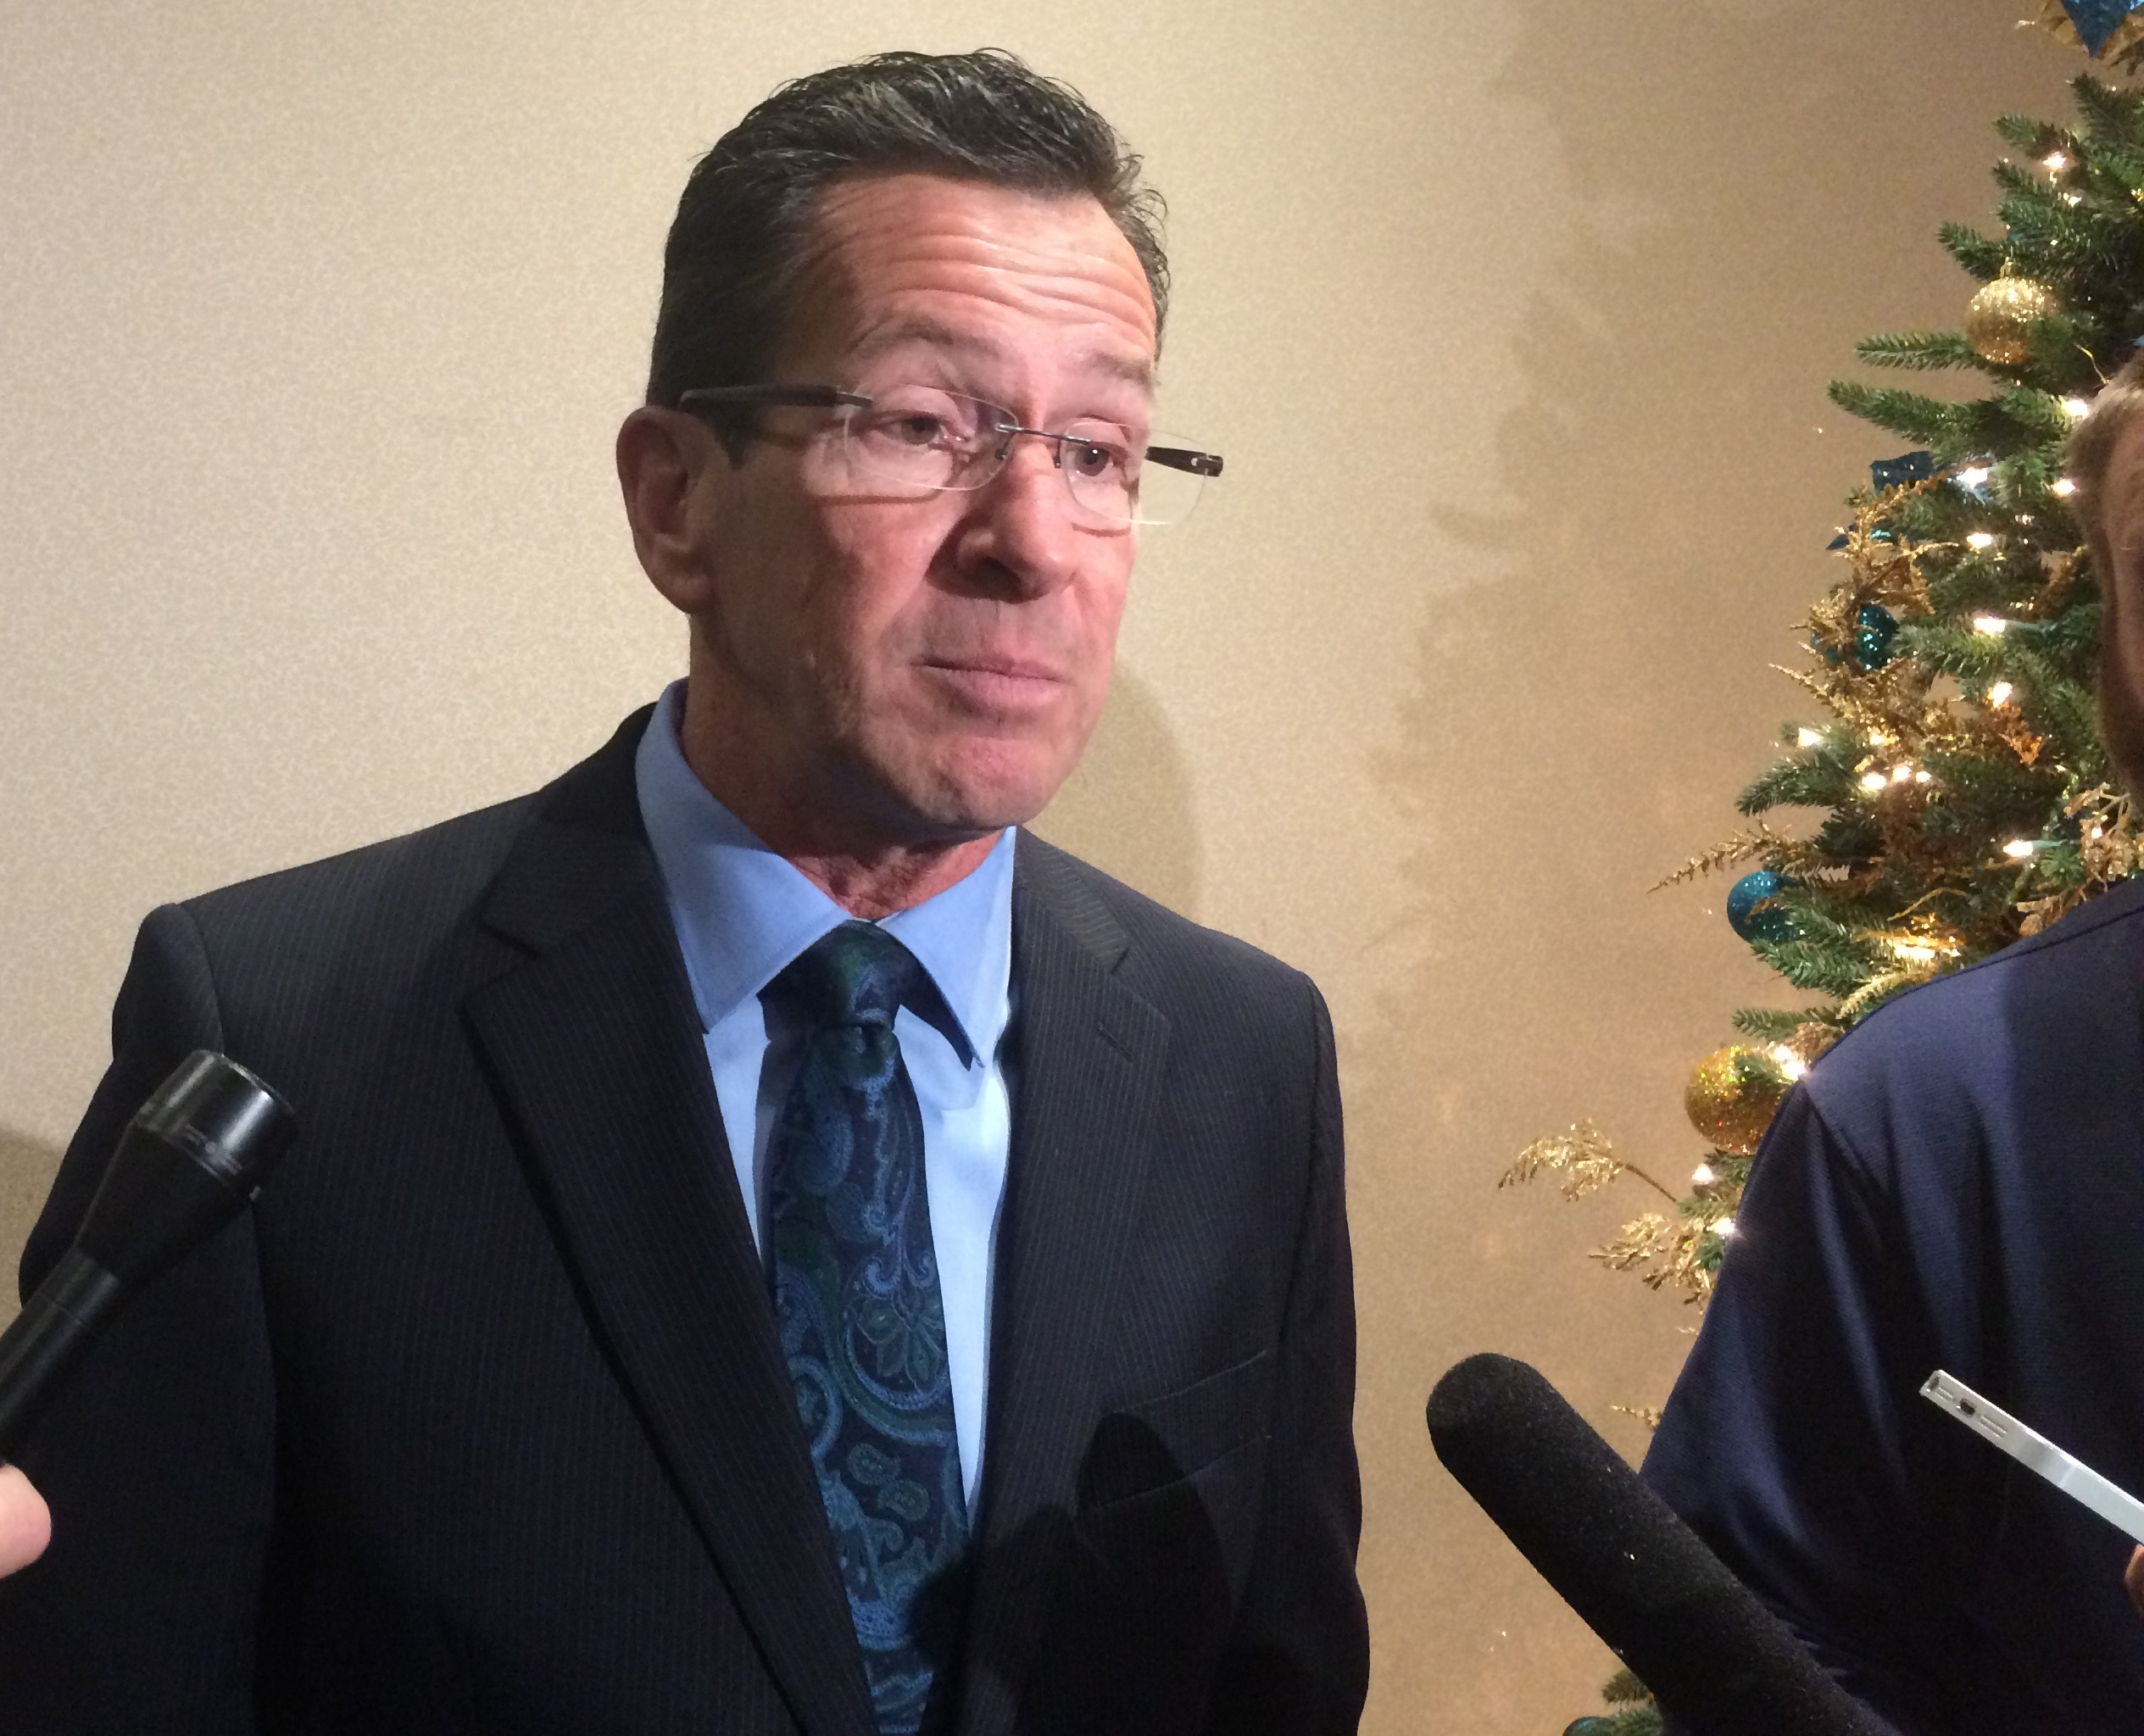 Free of campaign, Malloy tries a new narrative